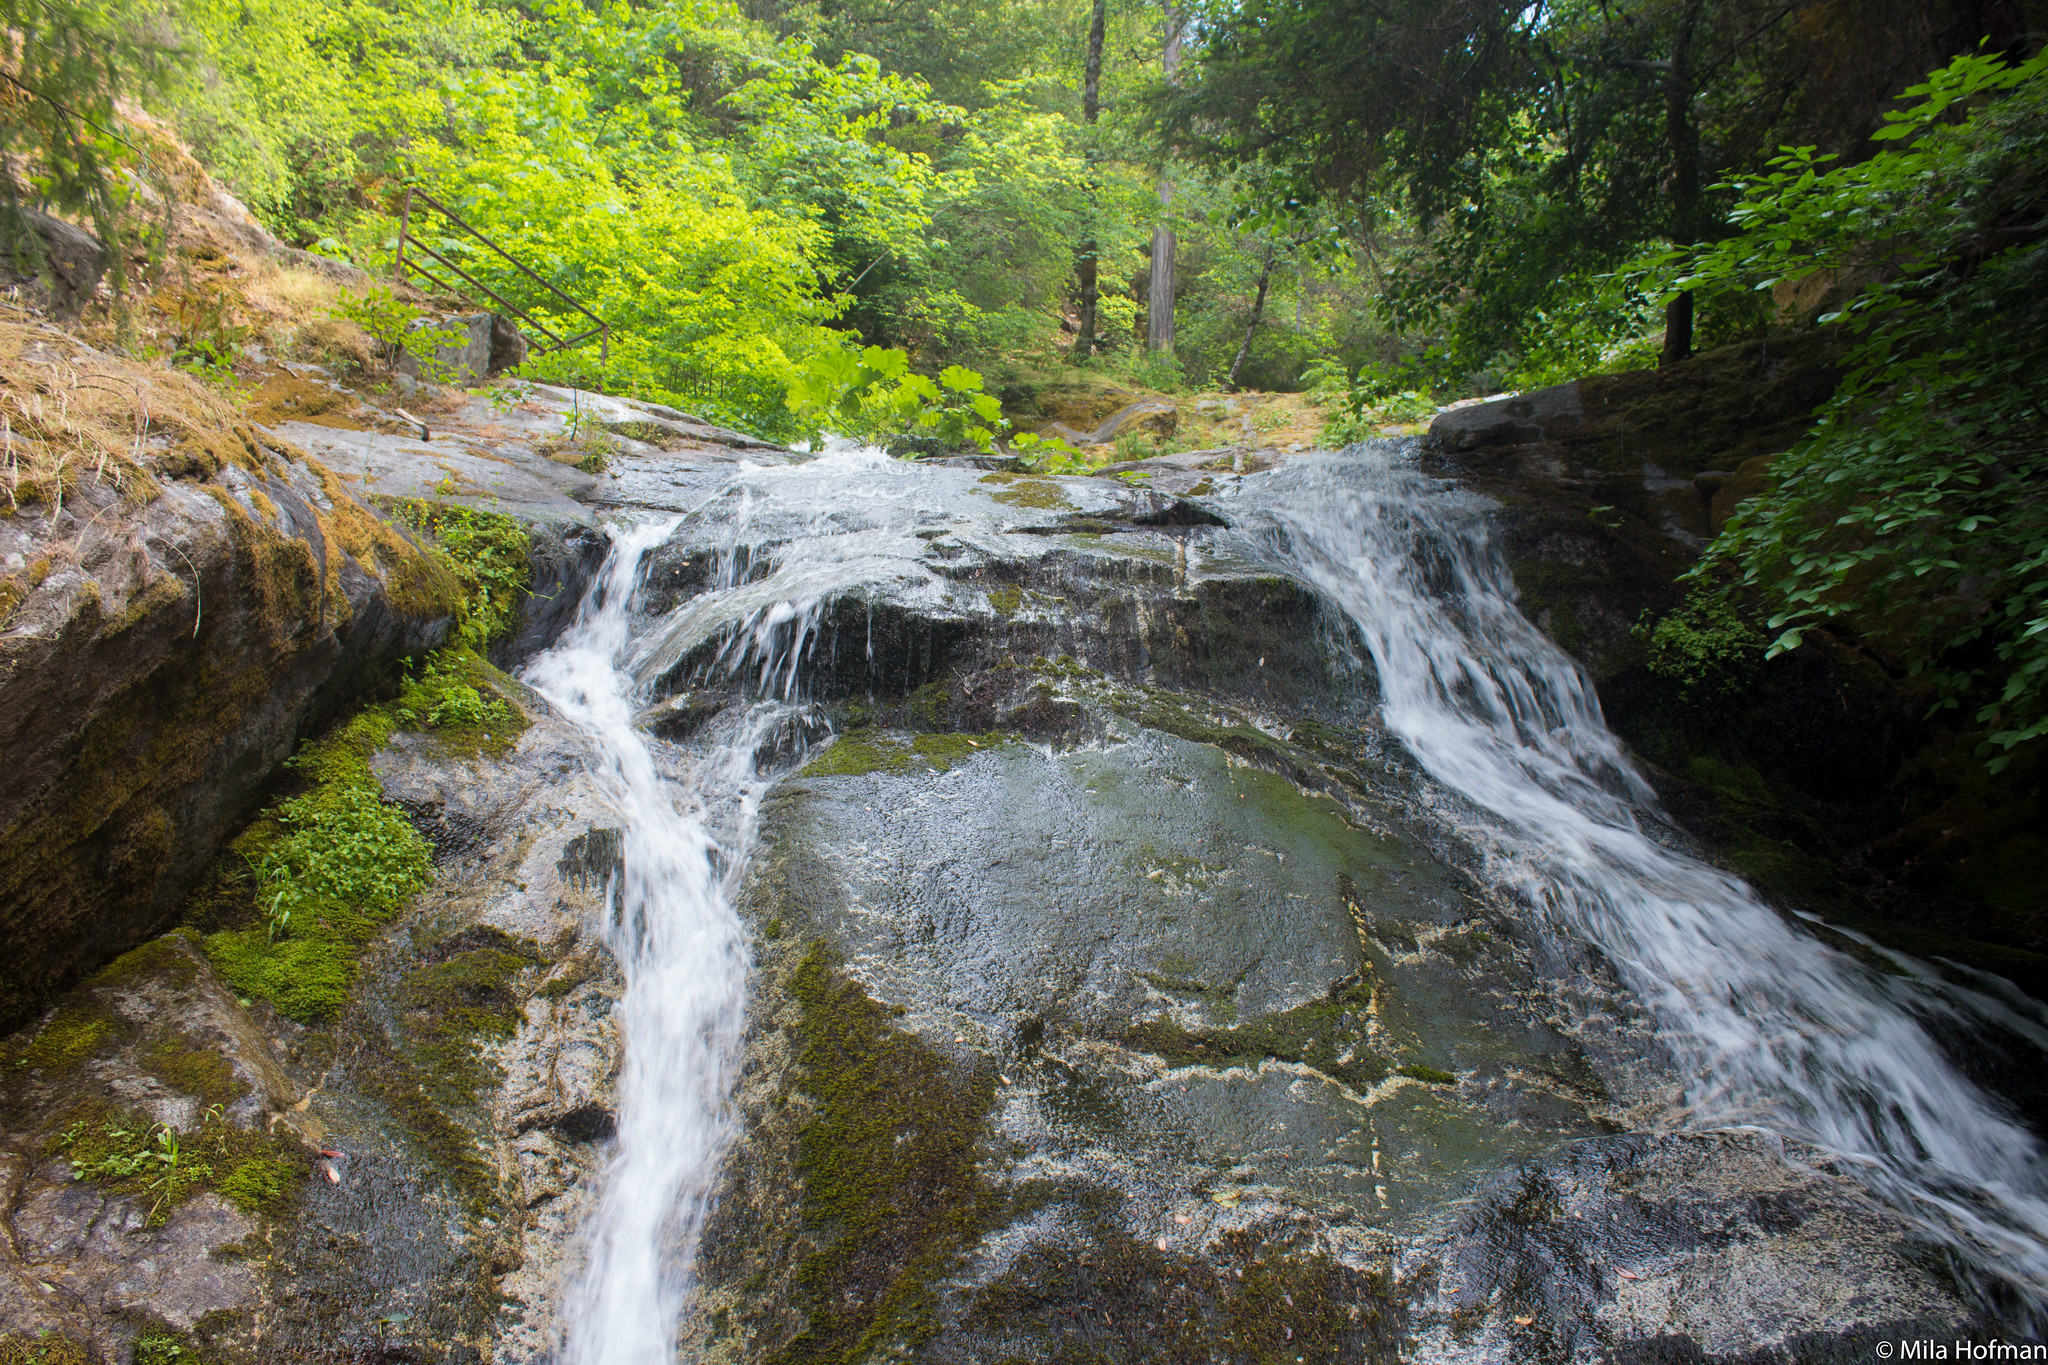 Whiskeytown waterfalls